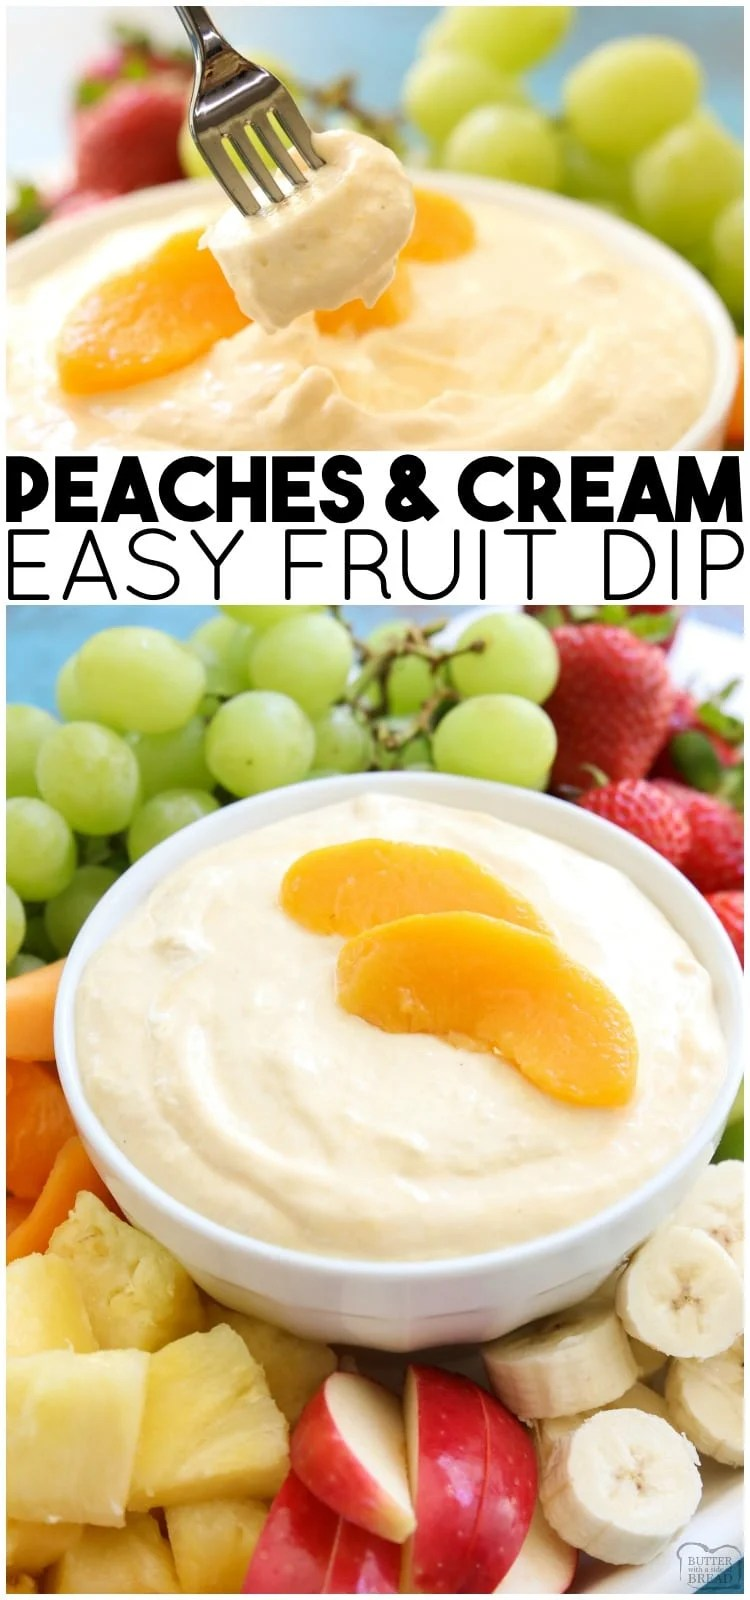 Peaches and Cream Fruit Dip is a sweet cream cheese fruit dip perfect for any occasion! This 5 ingredient peaches and cream recipe is easy, delicious, and perfect served with fresh fruit.